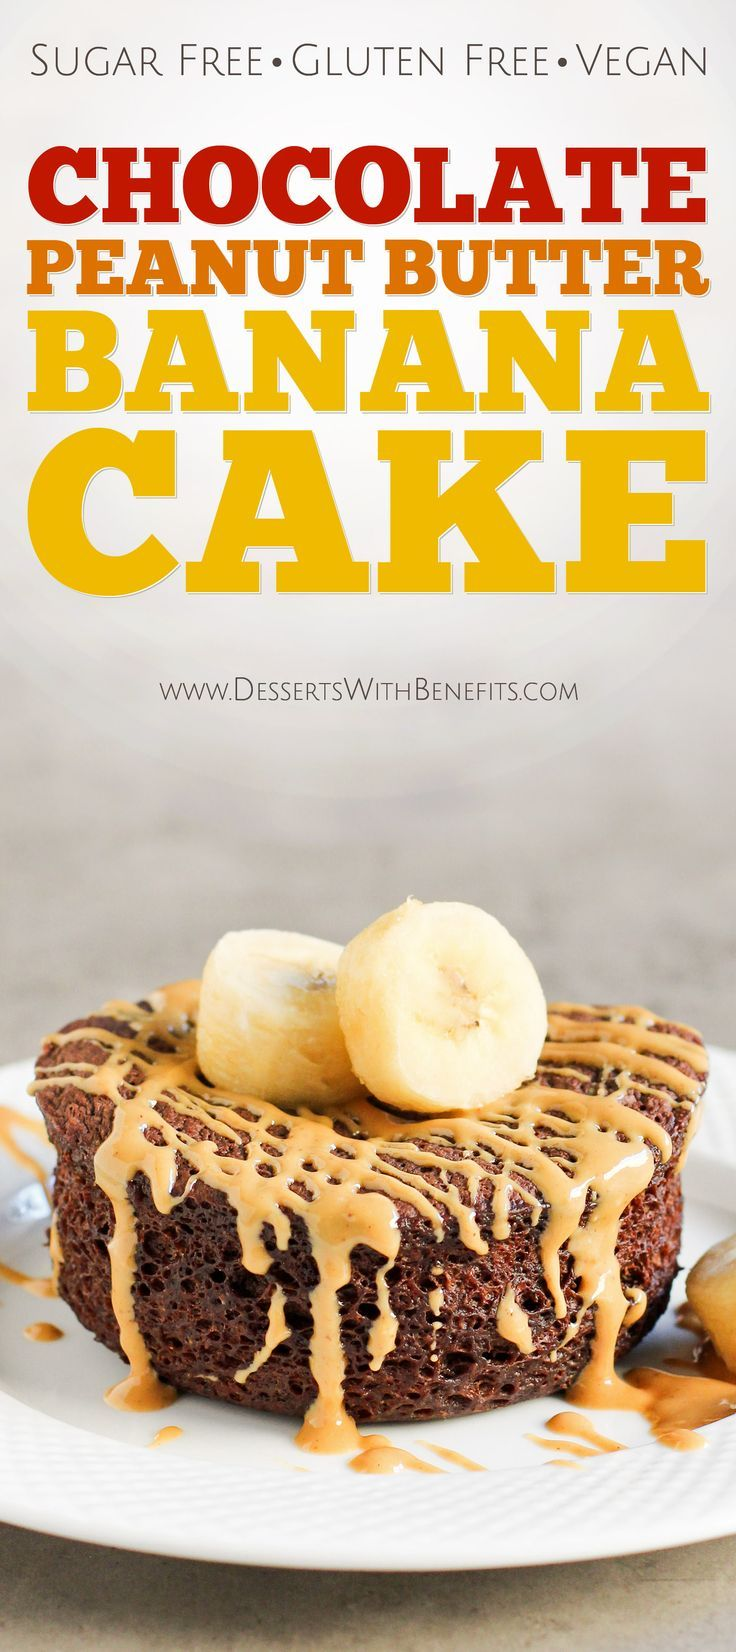 You can make this healthy-without-the-healthy-taste Single-Serving Chocolate Peanut Butter Banana Microwave Cake in FIVE minutes flat! It's so light, fluffy, and moist, it's hard to believe it's refined #sugarfree, #highprotein, #glutenfree, #dairyfree, and #vegan! Yep, that's right. No added sugar, butter, oil, flour, or eggs!-- Healthy Dessert Recipes at the Desserts With Benefits Blog (www.DessertsWithBenefits.com)